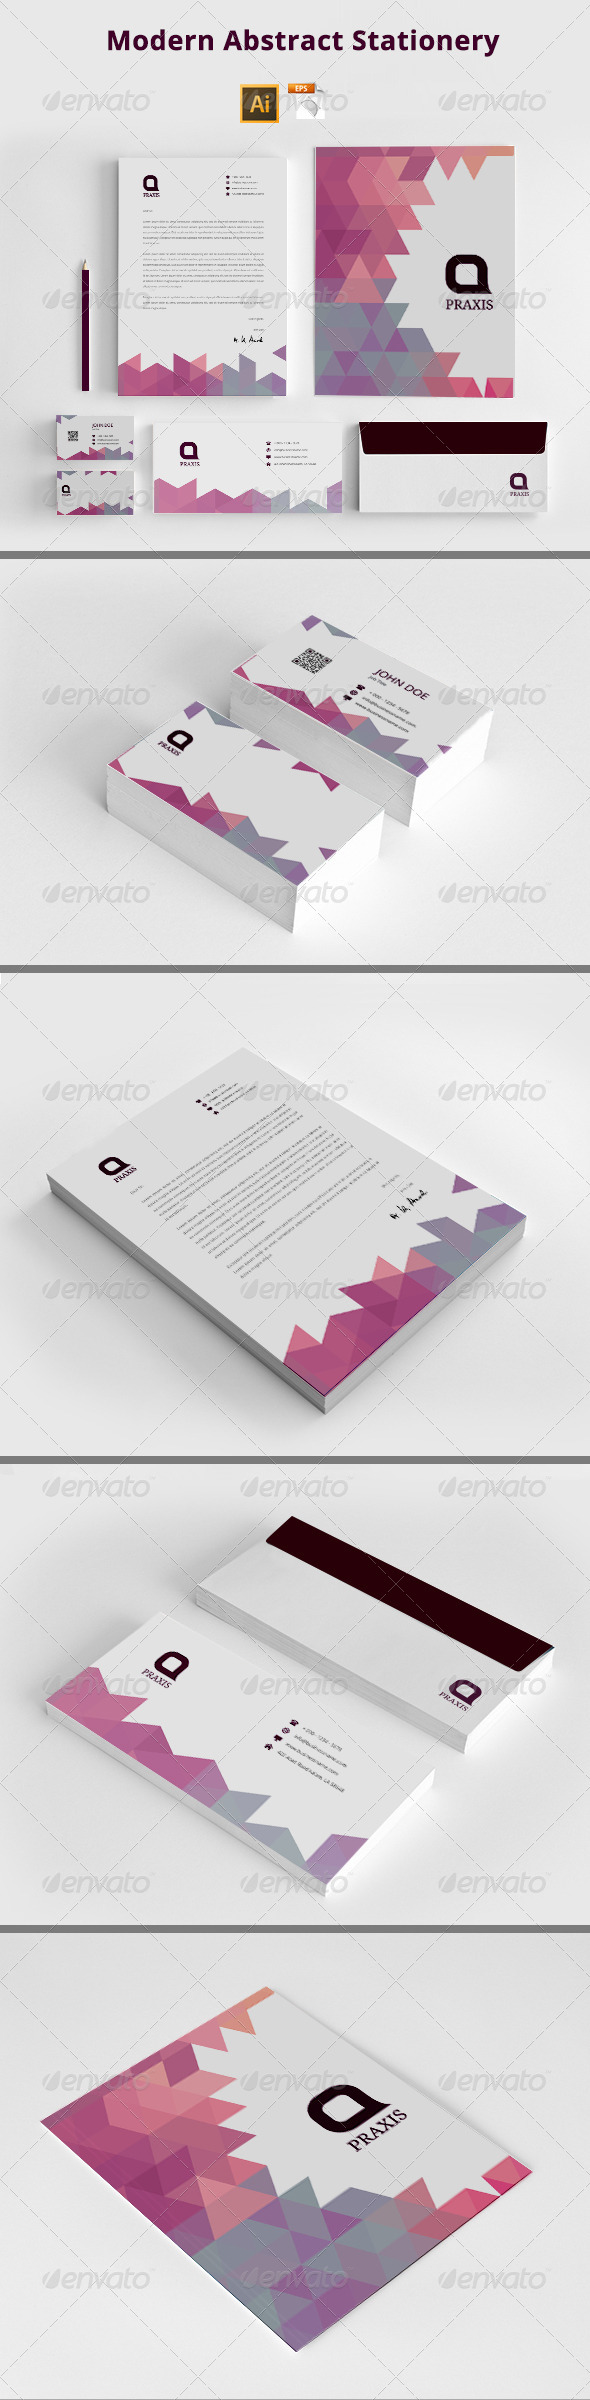 GraphicRiver Modern Abstract Stationery 8113596